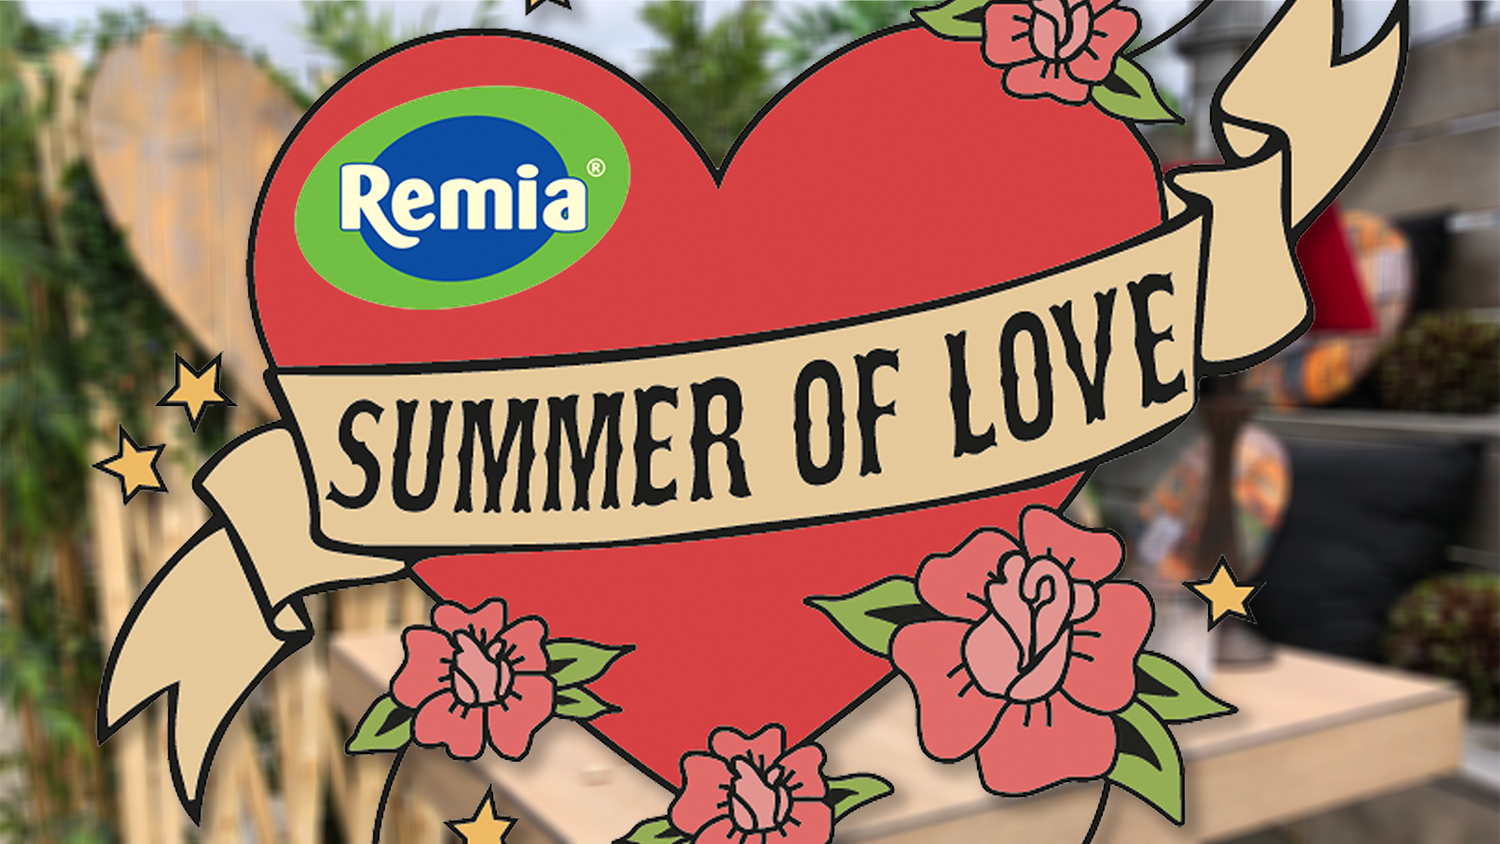 Remia viert Summer of Love